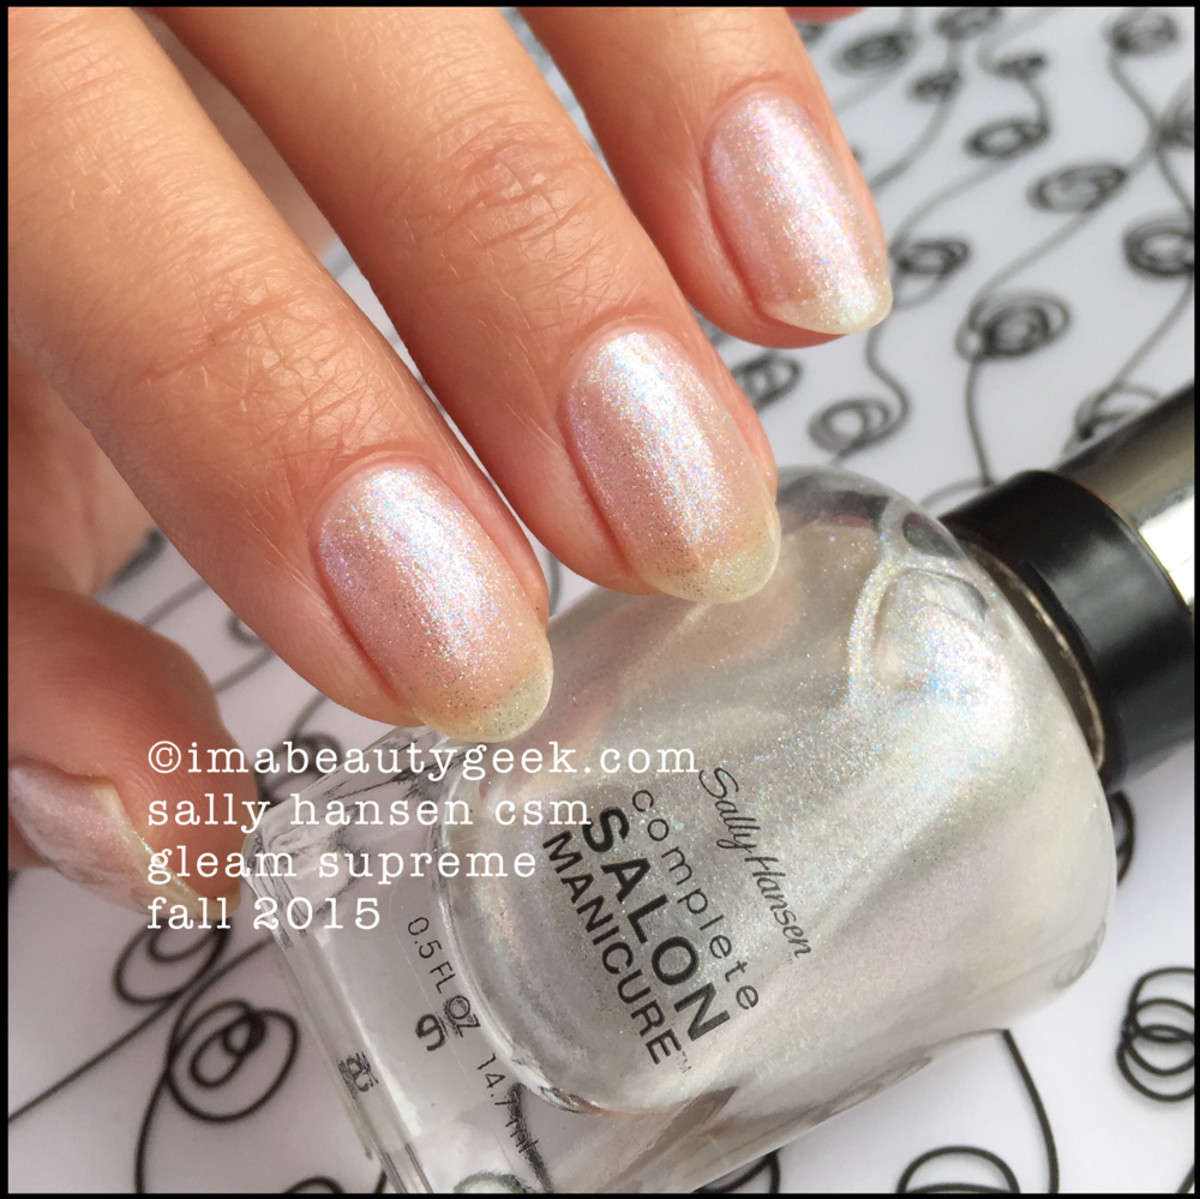 Sally Hansen Complete Salon Manicure Gleam Supreme